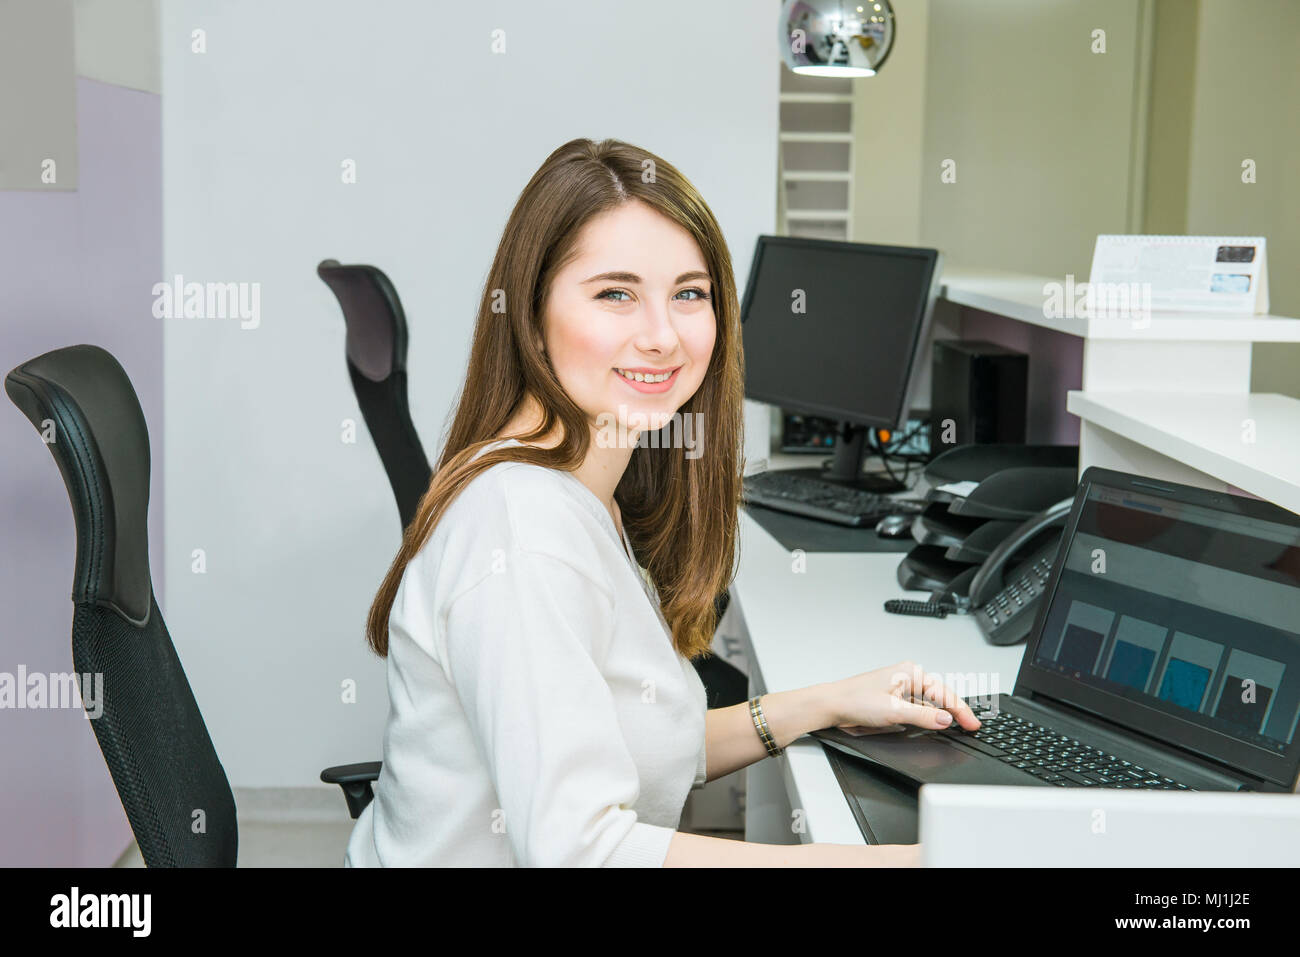 Portrait of skilled administrative manager working on laptop computer in office satisfied with occupation, young female receptionist organizing workin Stock Photo